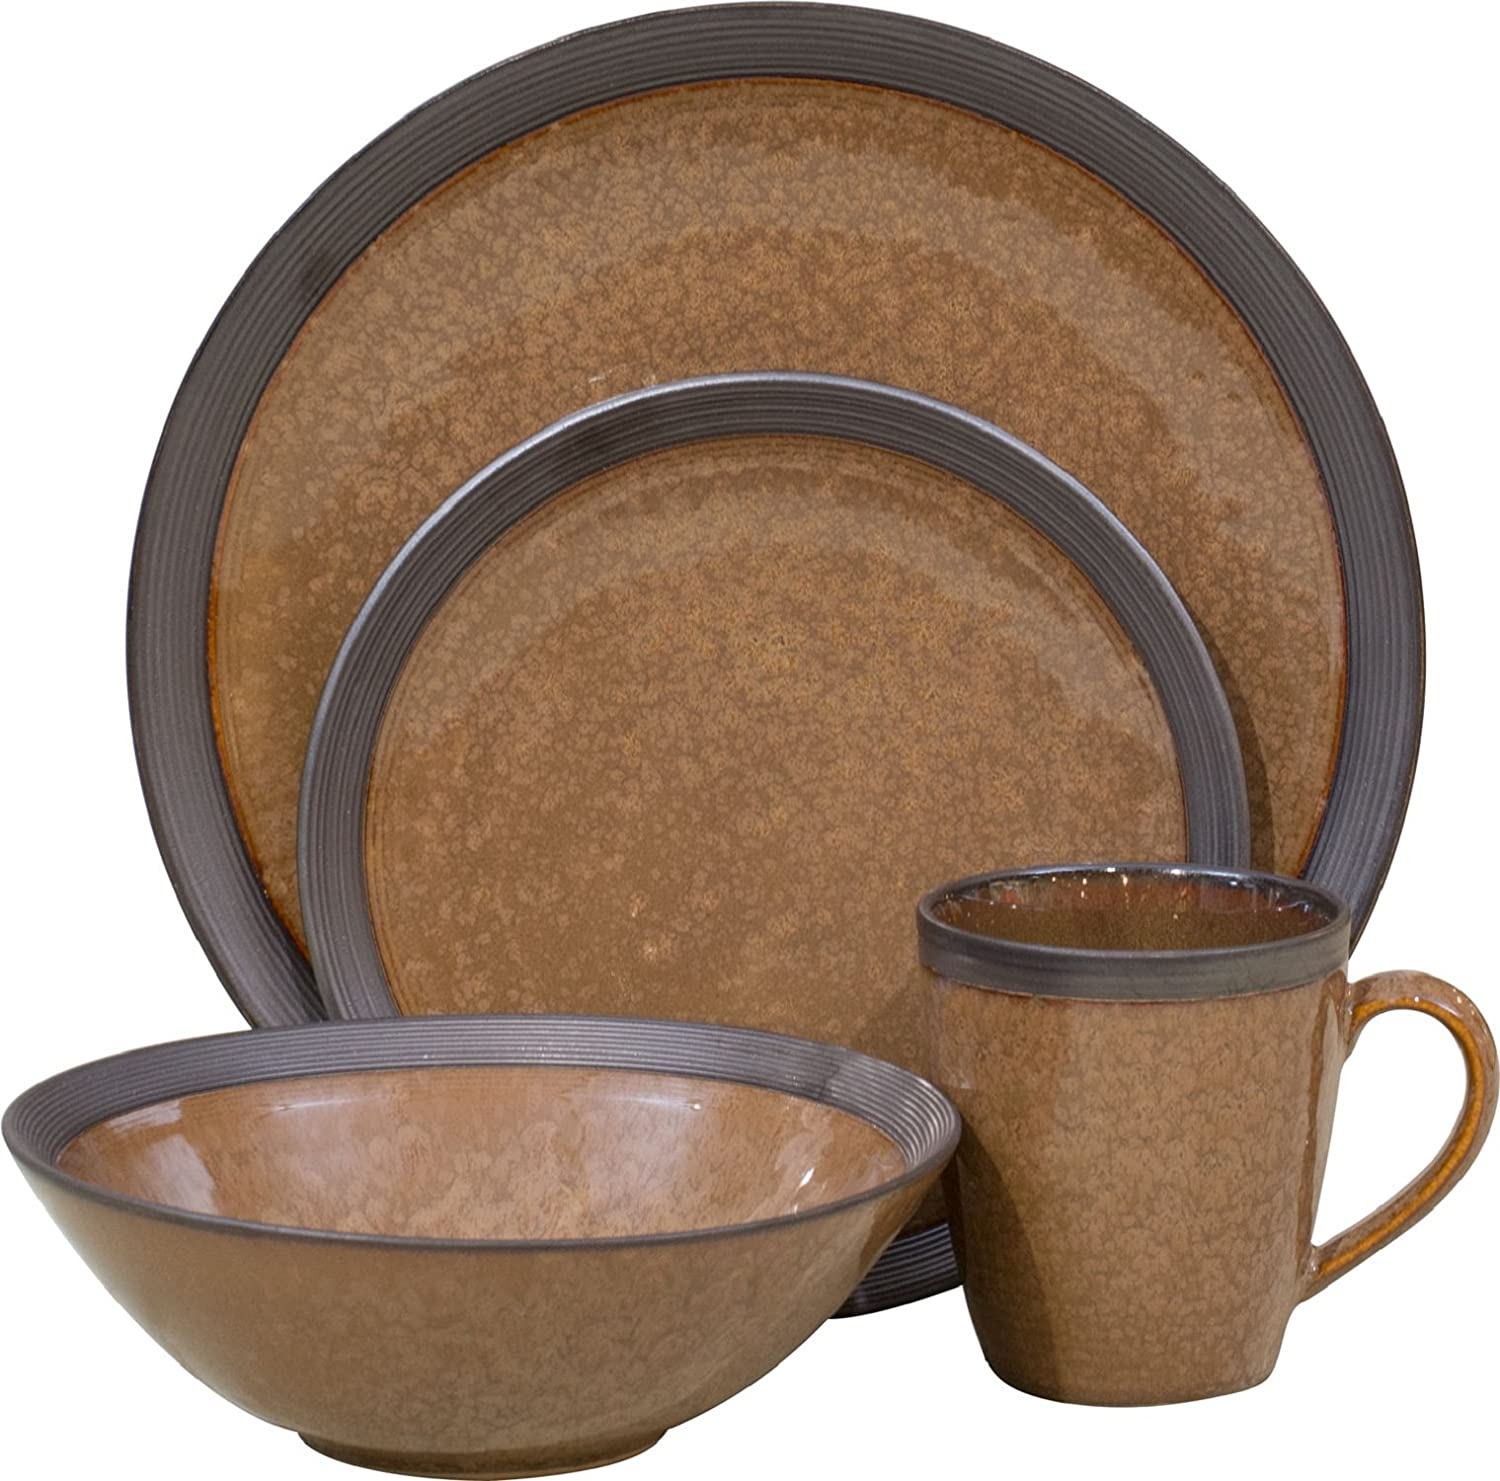 amazoncom sango 16 piece omega dinnerware set cocoa dinnerware sets - Stoneware Dishes